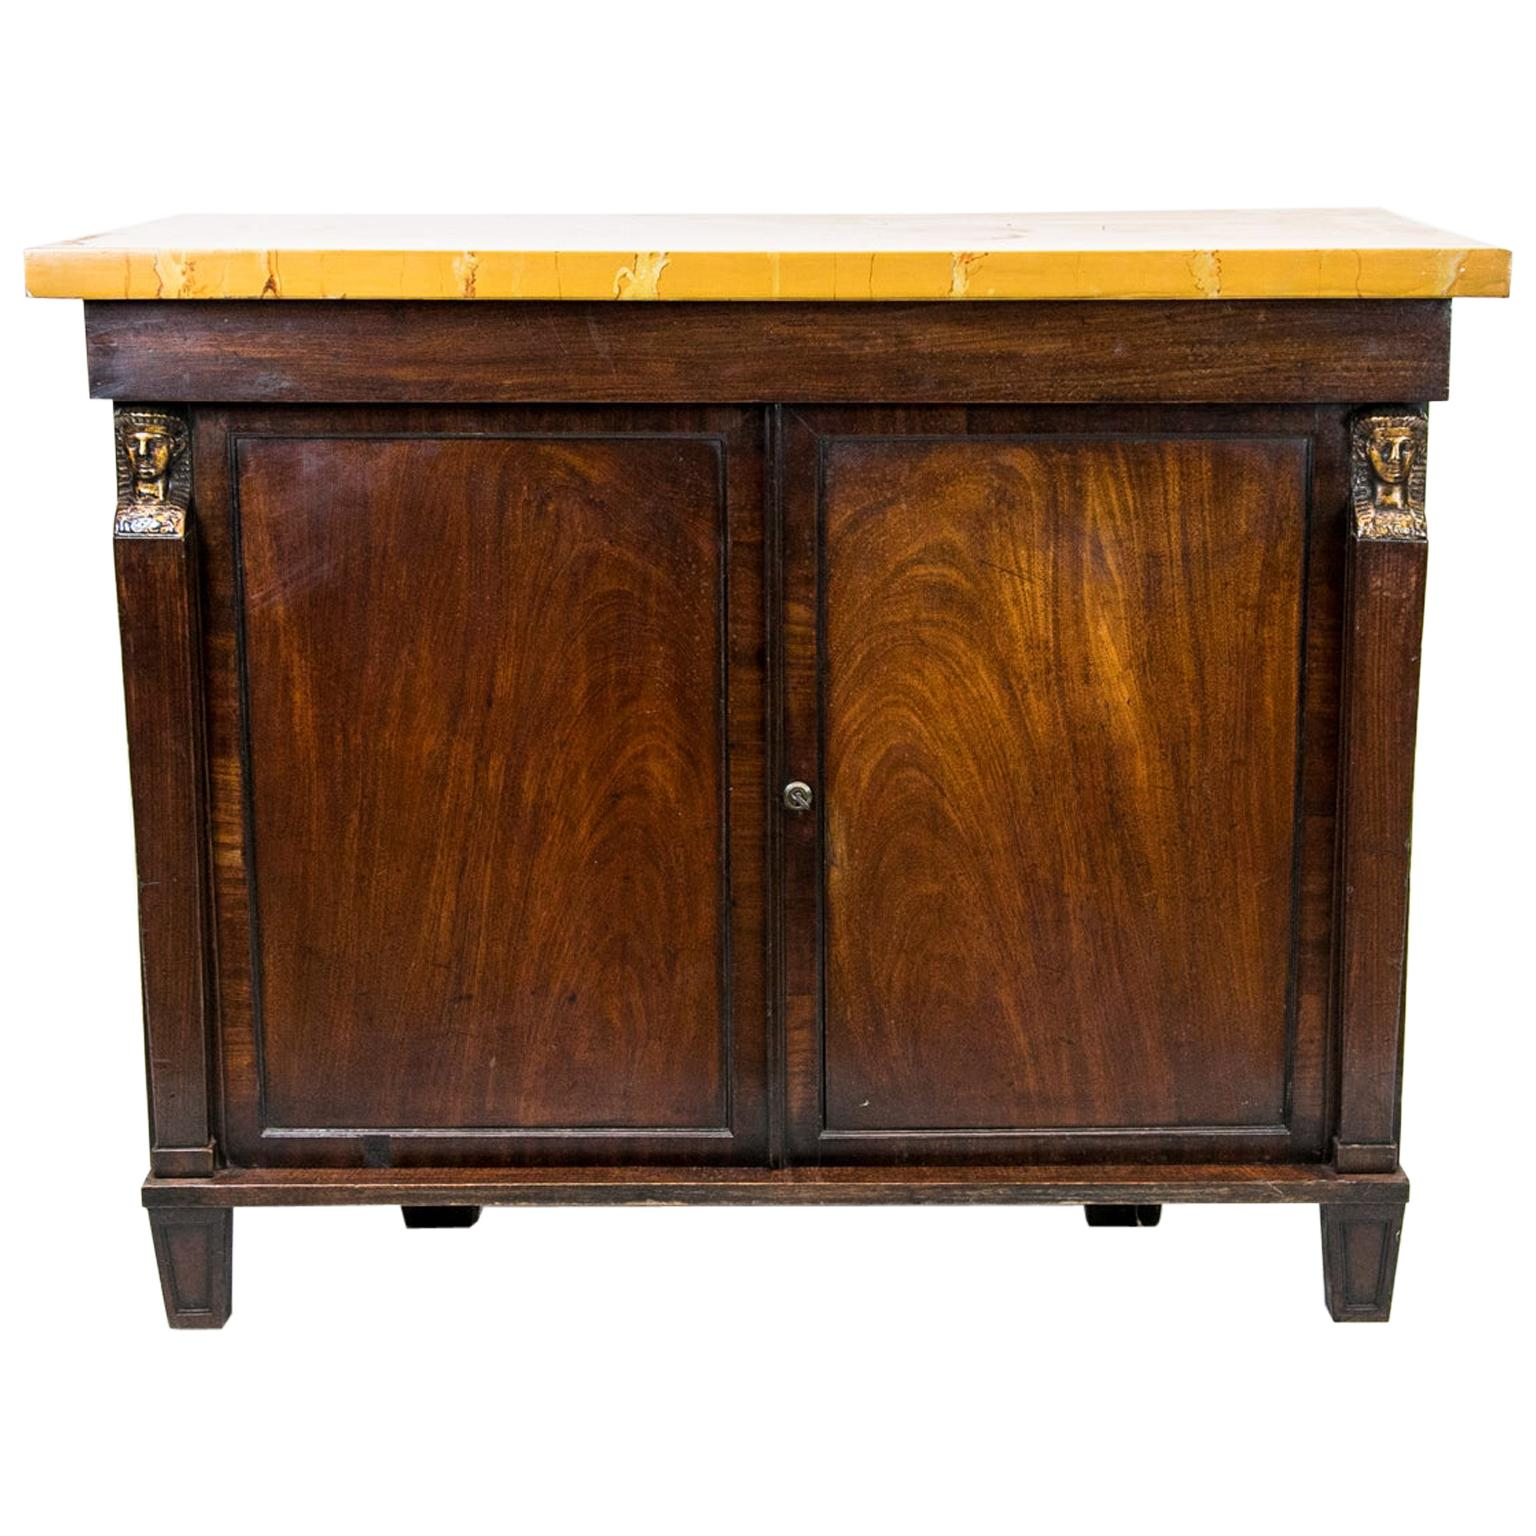 English Regency Console Cabinet